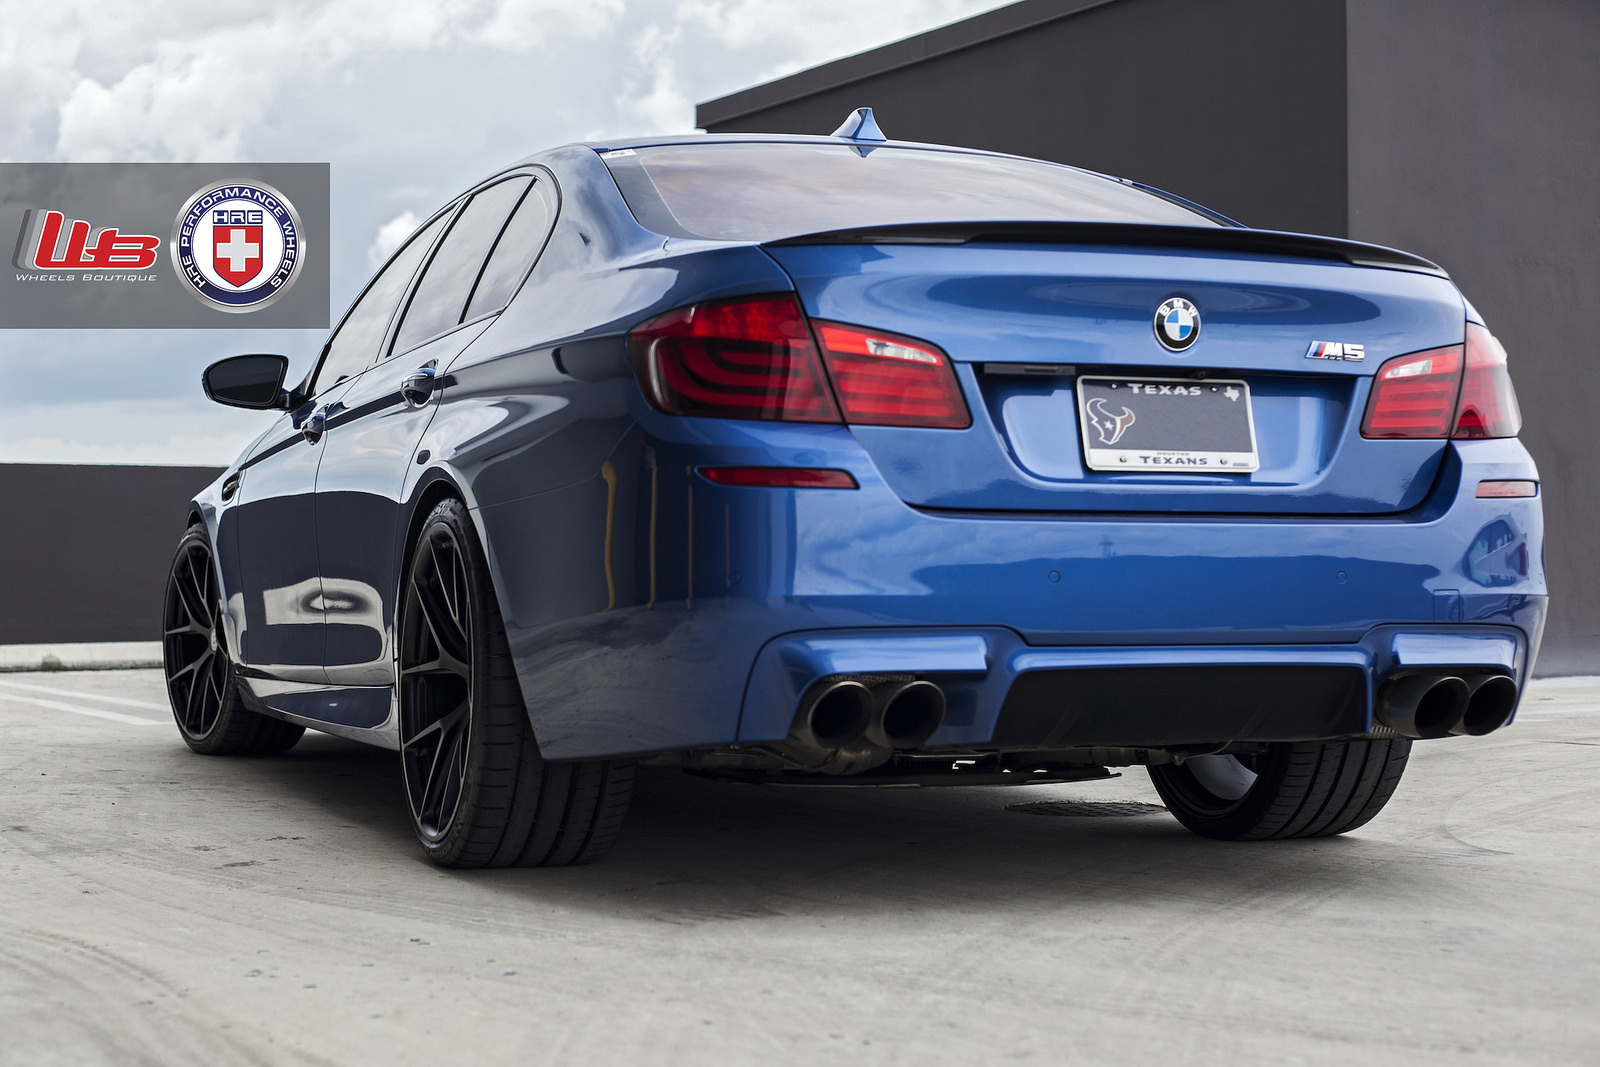 Clean Looking Monte Carlo Blue Bmw F10 M5 On Hre Wheels